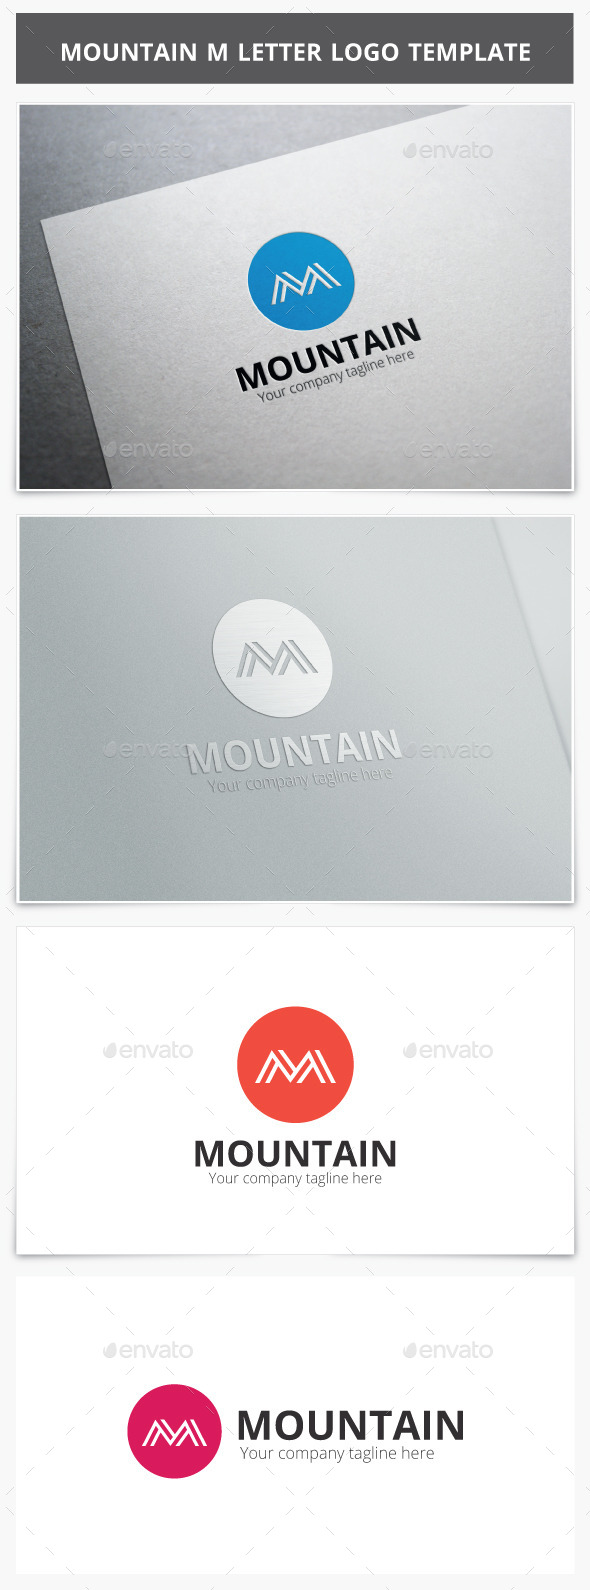 GraphicRiver Mountain M Letter Logo 10090982